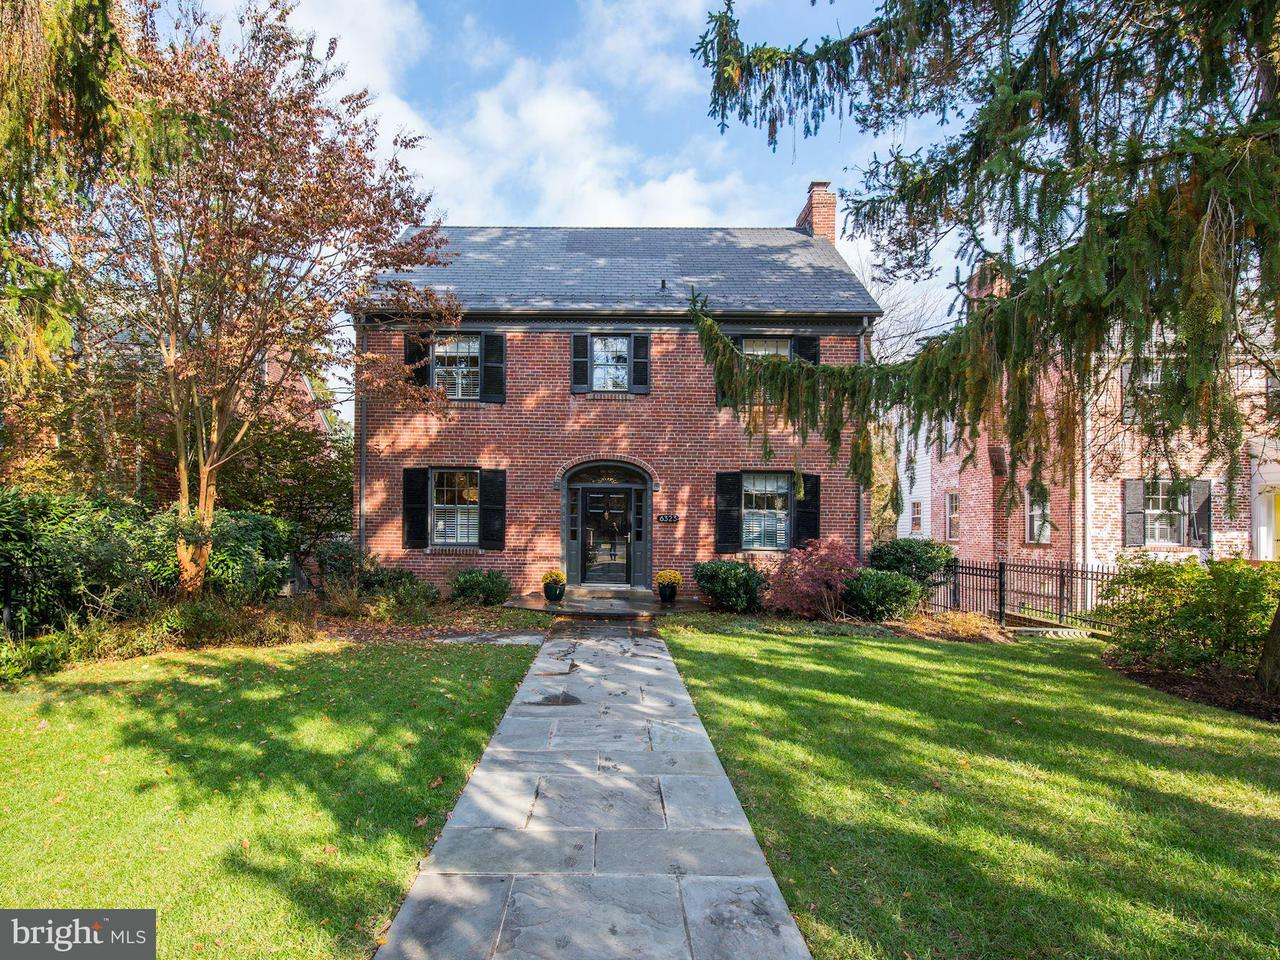 Single Family Home for Sale at 6323 UTAH AVE NW 6323 UTAH AVE NW Washington, District Of Columbia 20015 United States